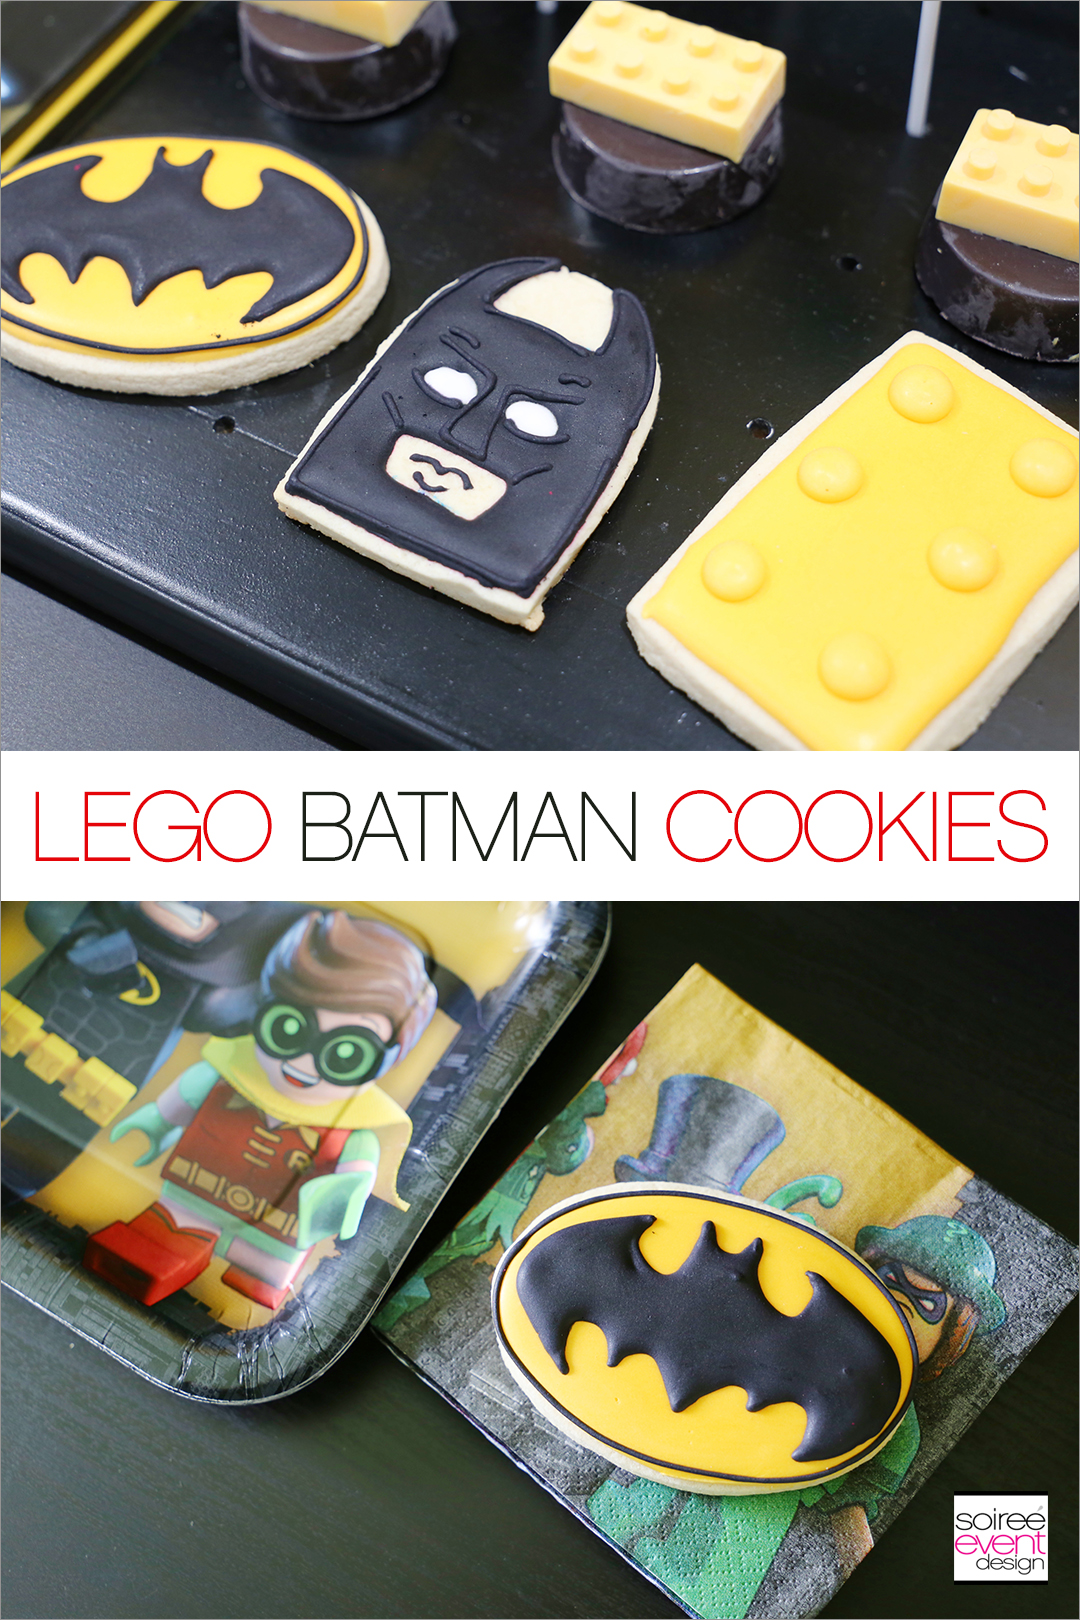 Lego Batman Party Ideas - Lego Batman Cookies